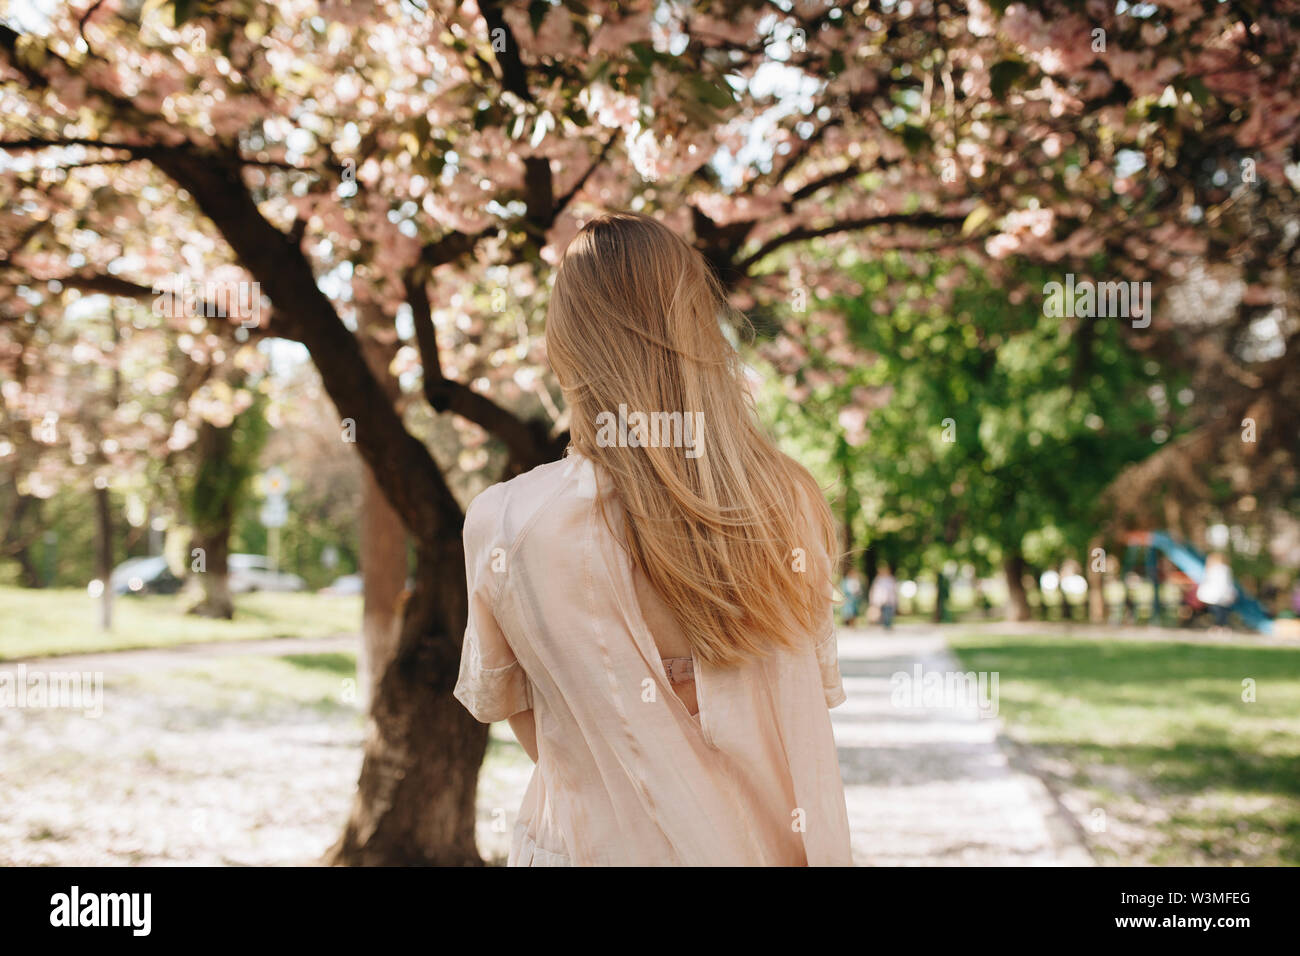 Blond haired woman by blossoming trees - Stock Image